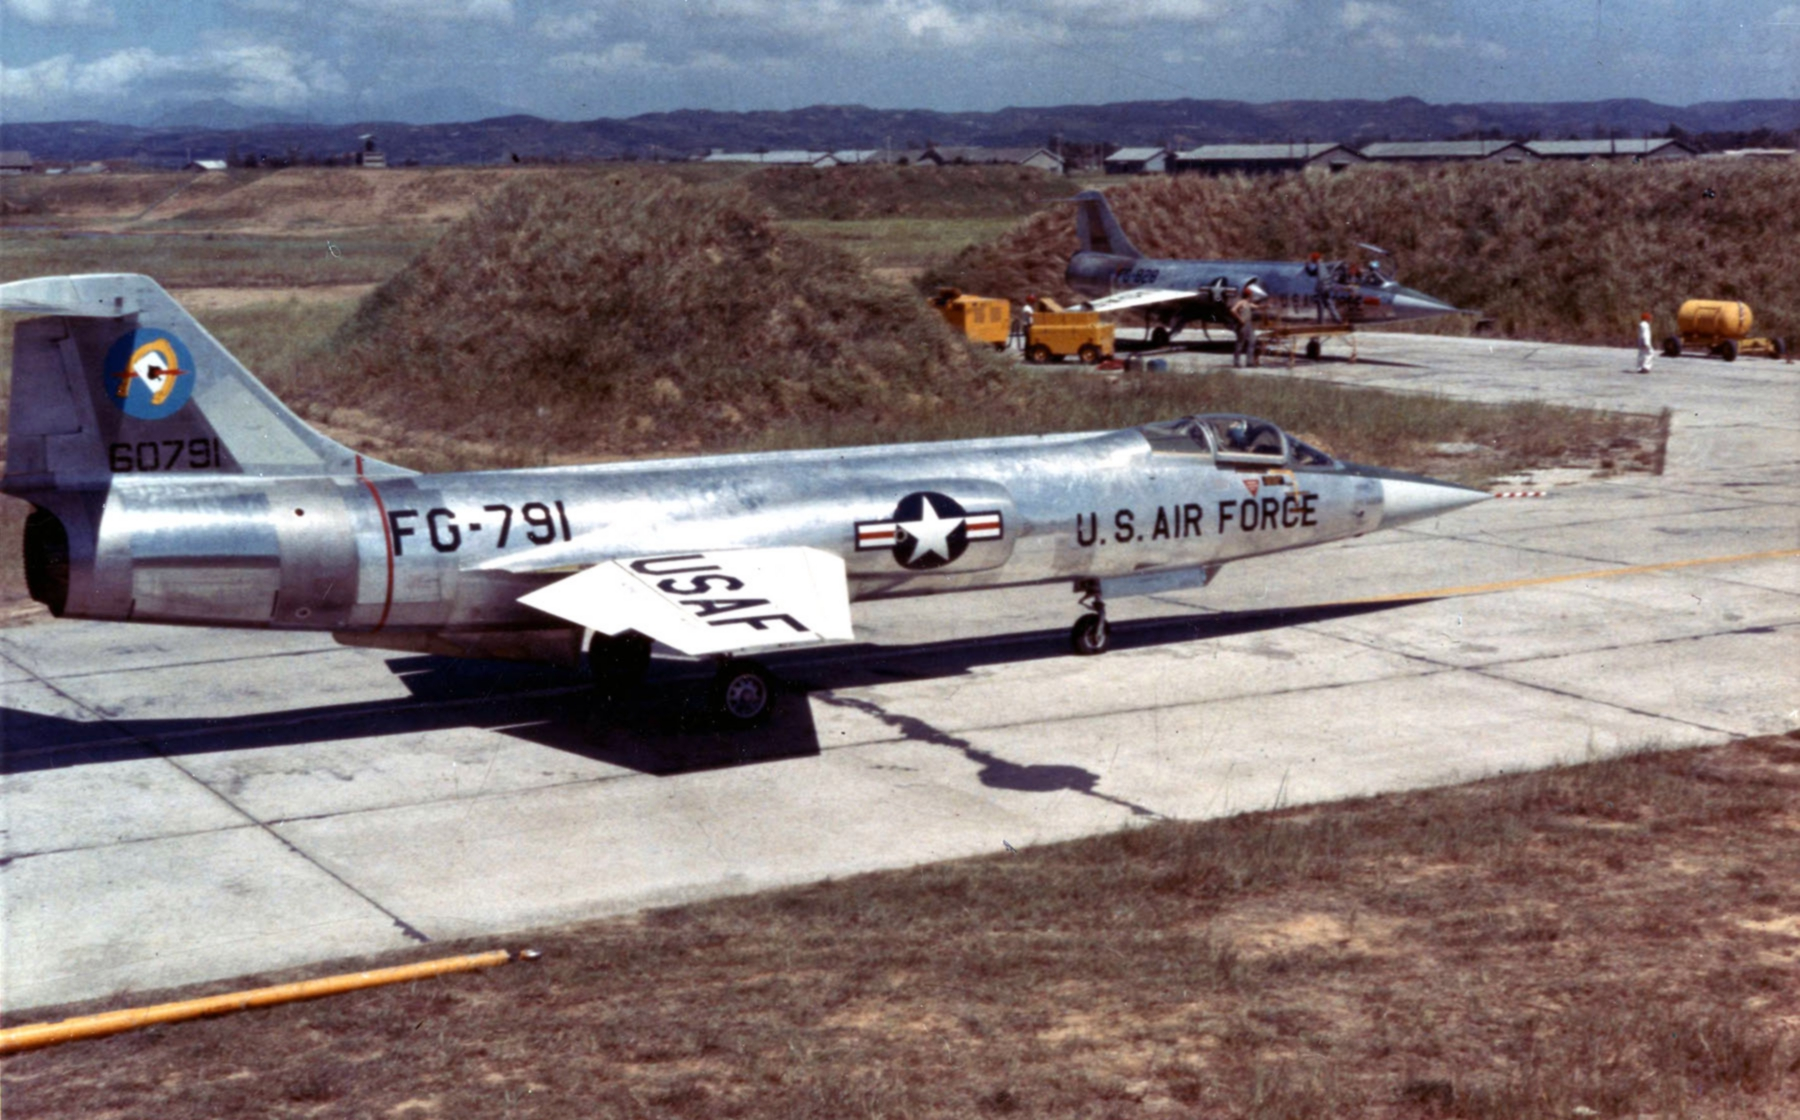 Lockheed_F-104A_of_the_83rd_Fighter_Interceptor_Squadron_at_Taoyuan_Air_Base_Taiwan_on_Sept._15_1958_during_the_Quemoy_Crisis_-_Operation_Jonah_Able.jpg